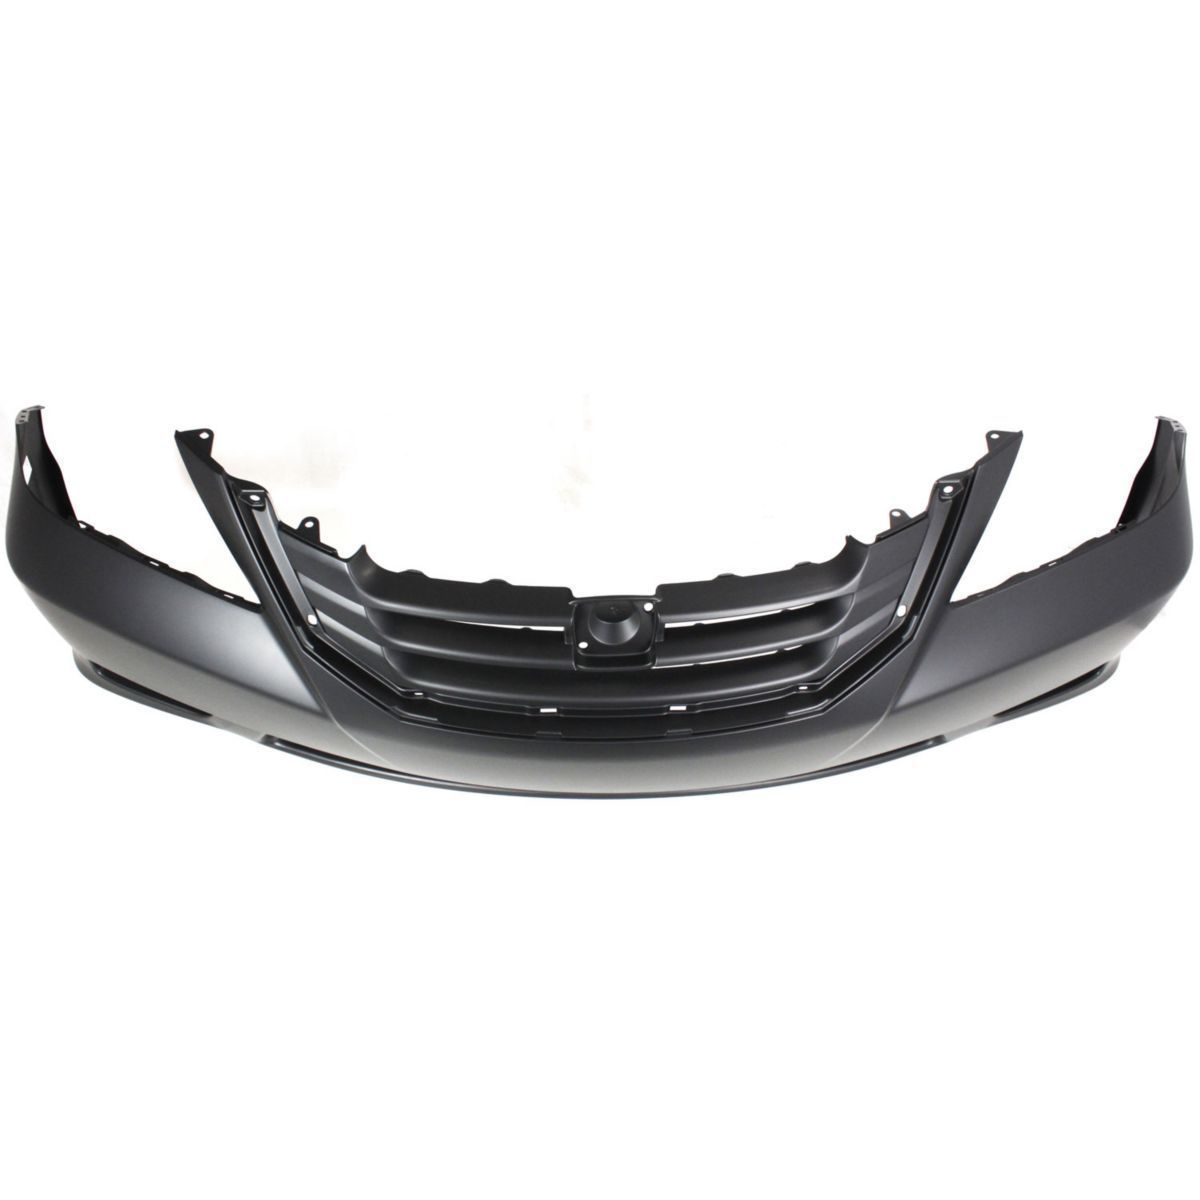 2008-2010 HONDA ODYSSEY Front Bumper Cover EX/EX-L/LX Painted to Match